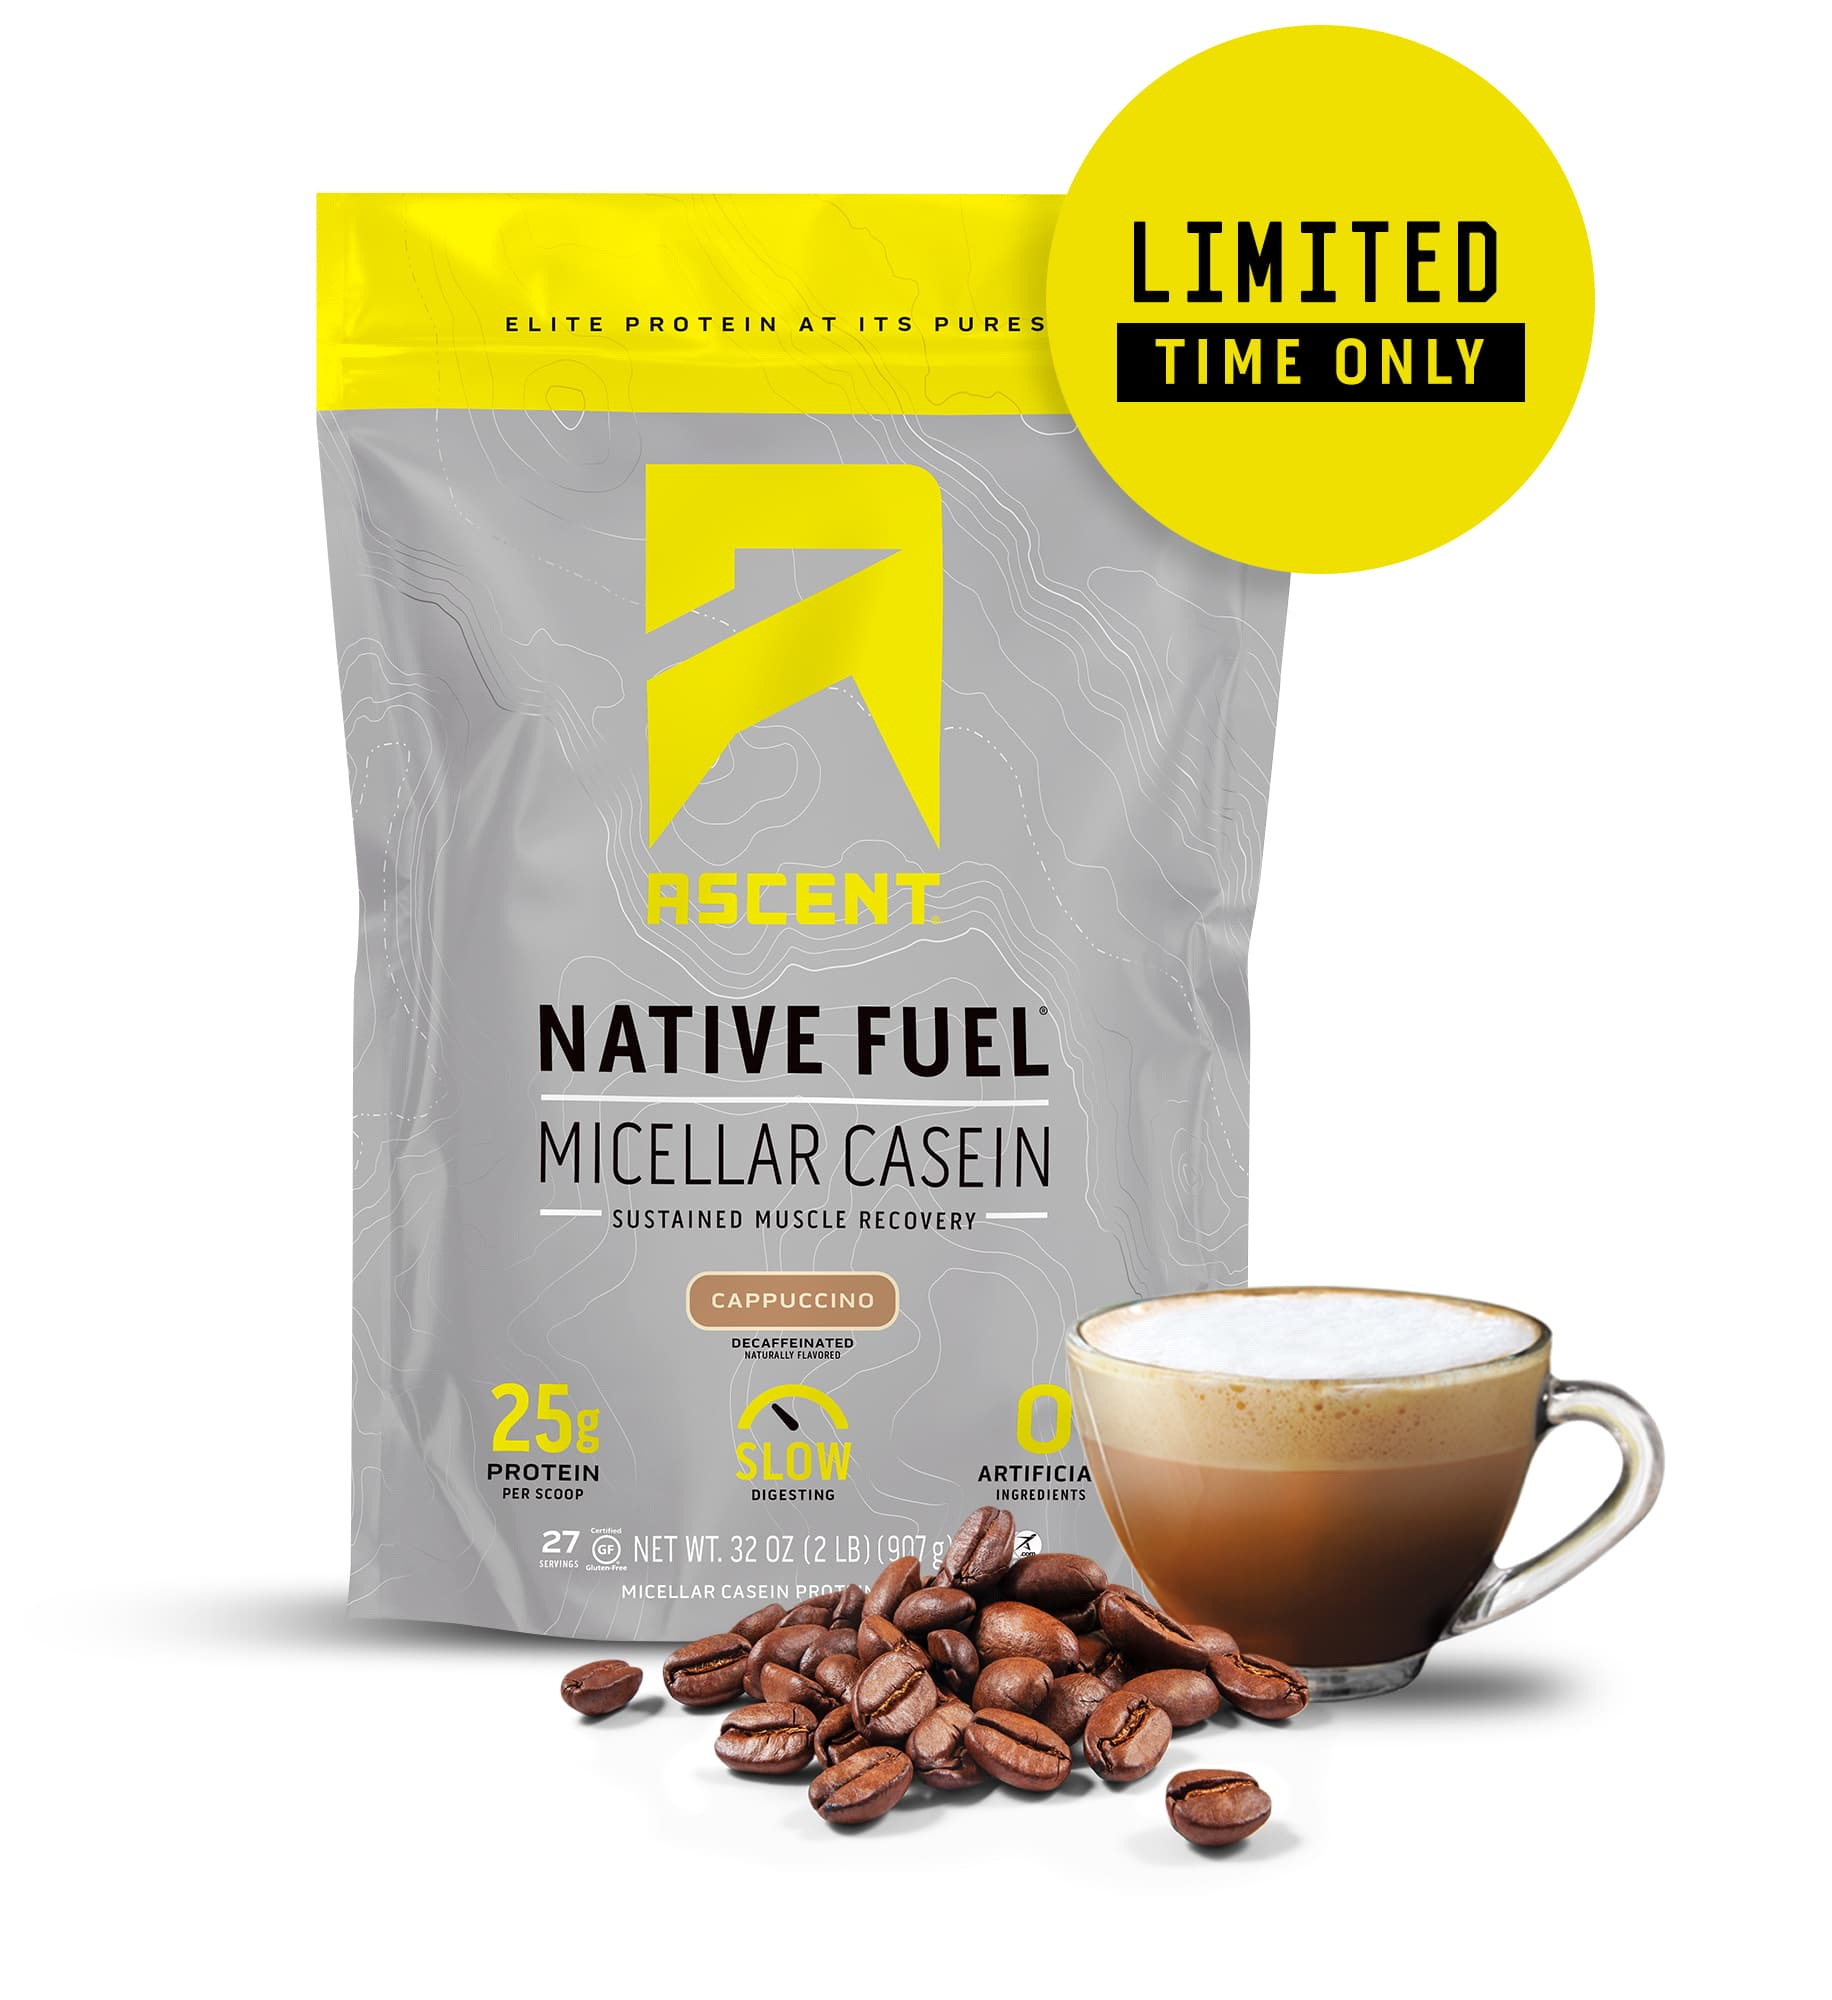 Ascent Launches Native Fuel Micellar Casein Protein Powder